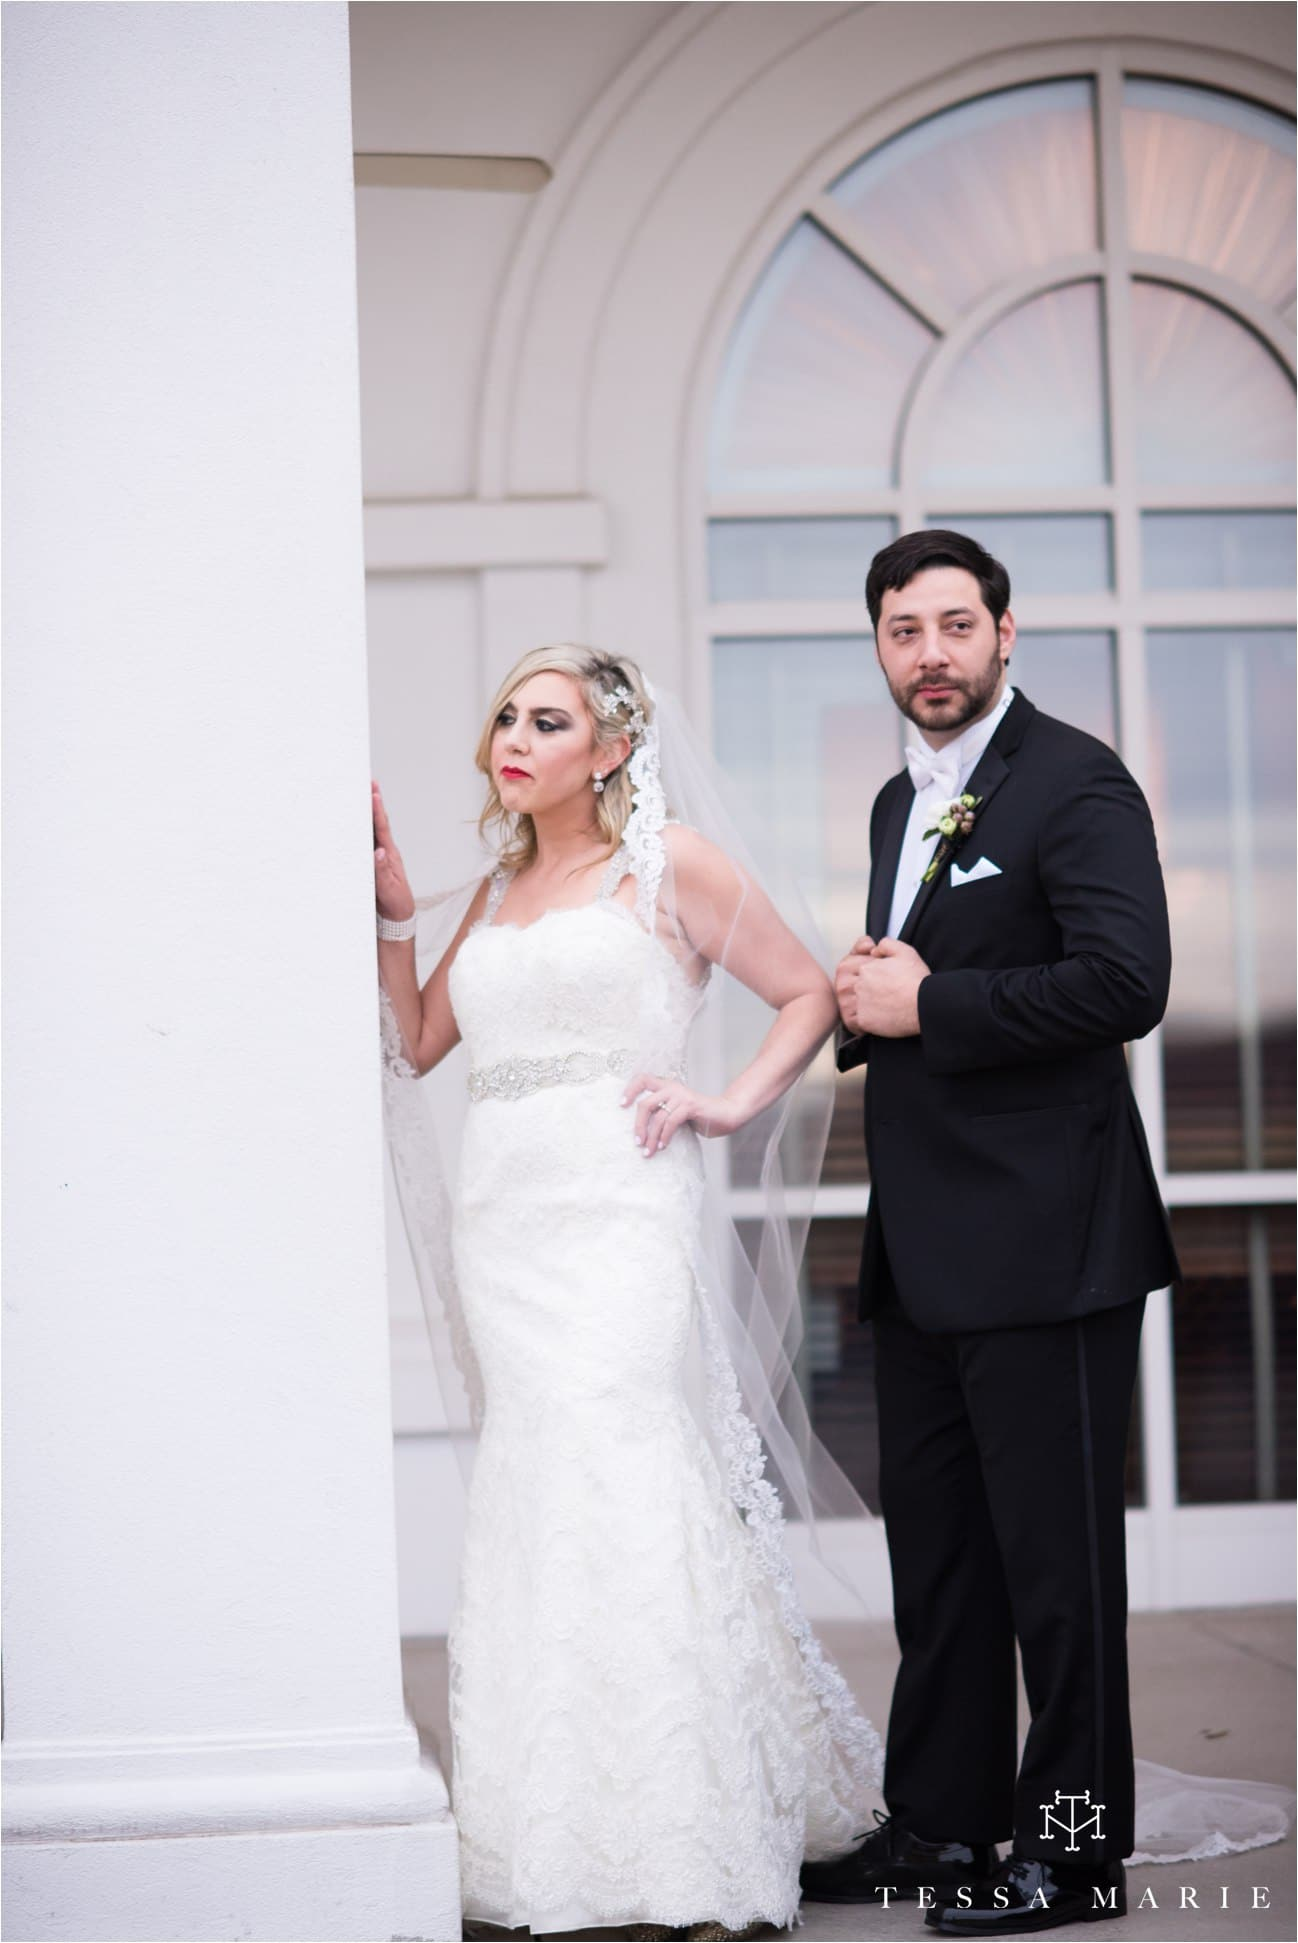 tessa_marie_brickyard_marietta_new_years_wedding_pictures_candid_emotional_wedding_portraits_0050